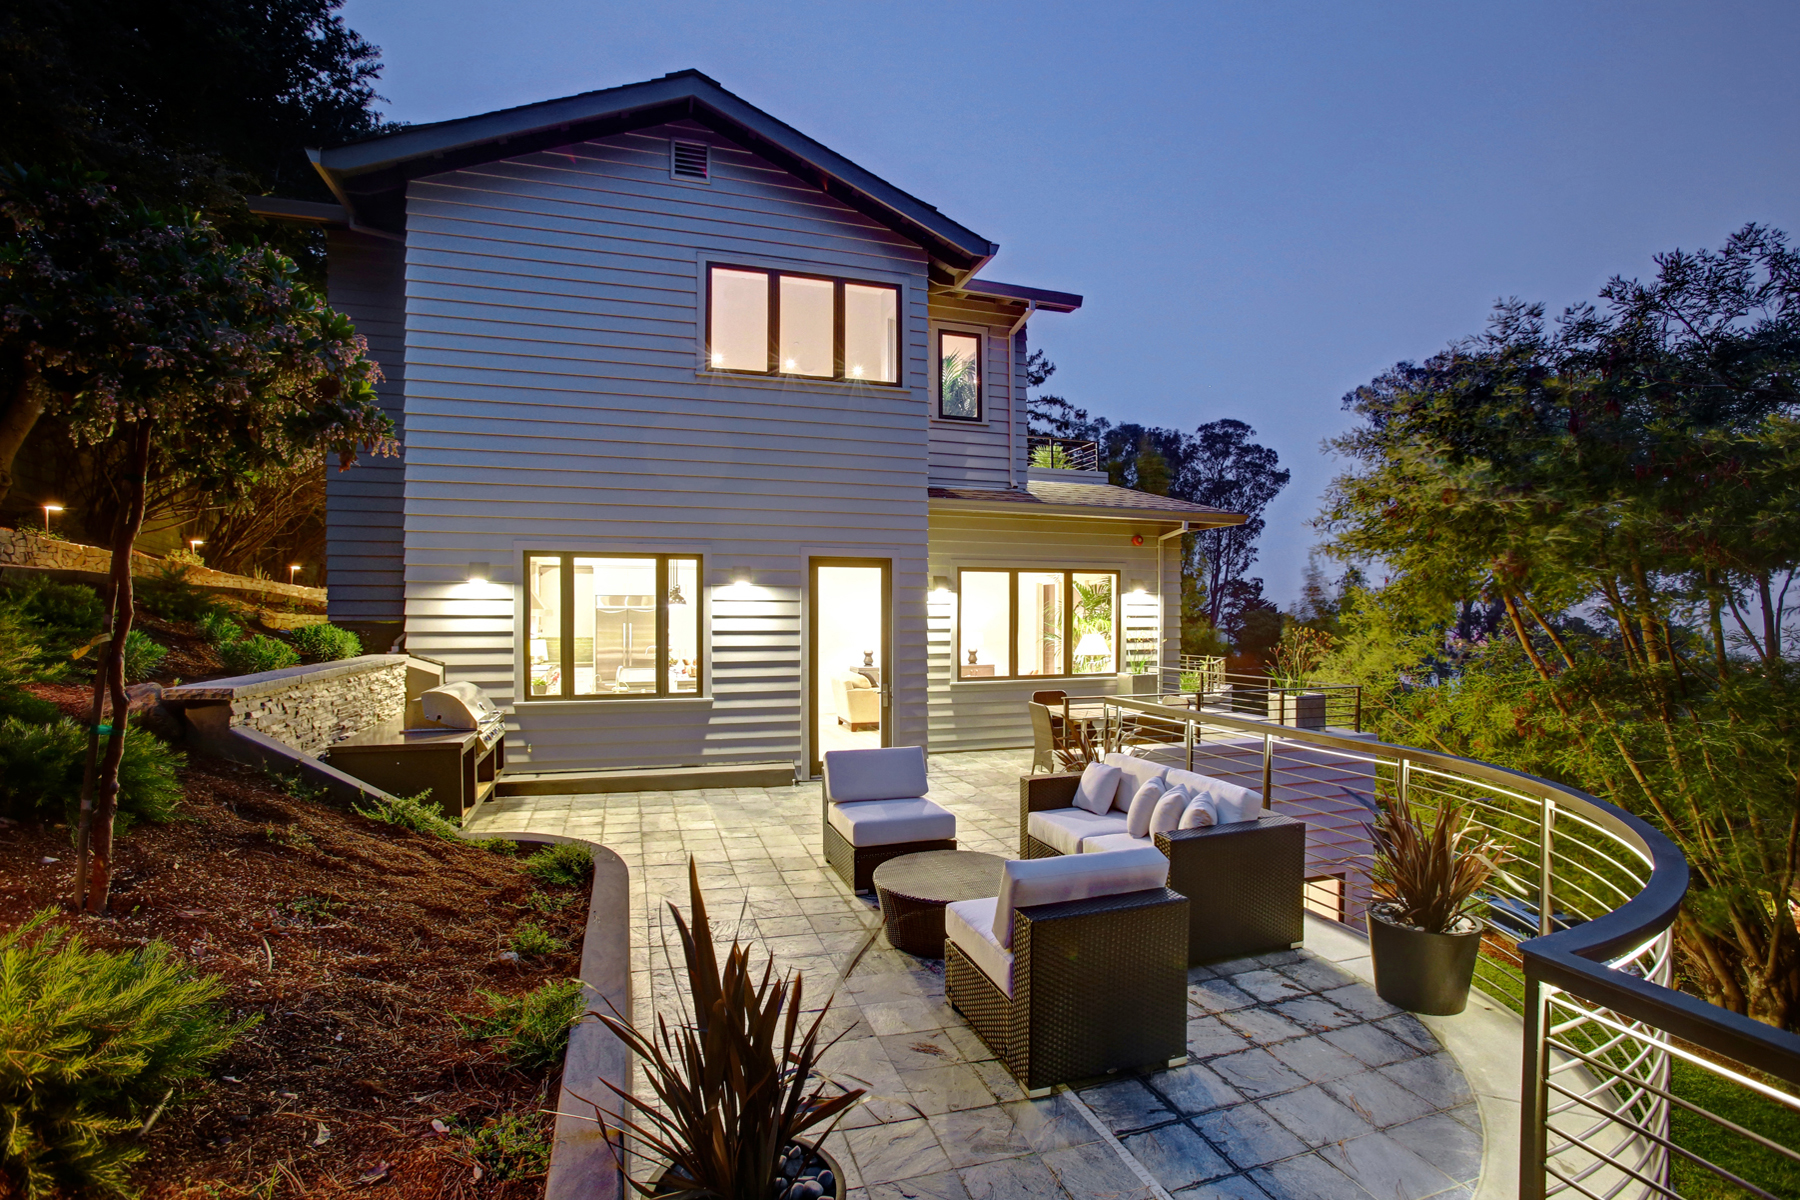 Mill valley residence jyasf structural engineers for Homes in mill valley ca